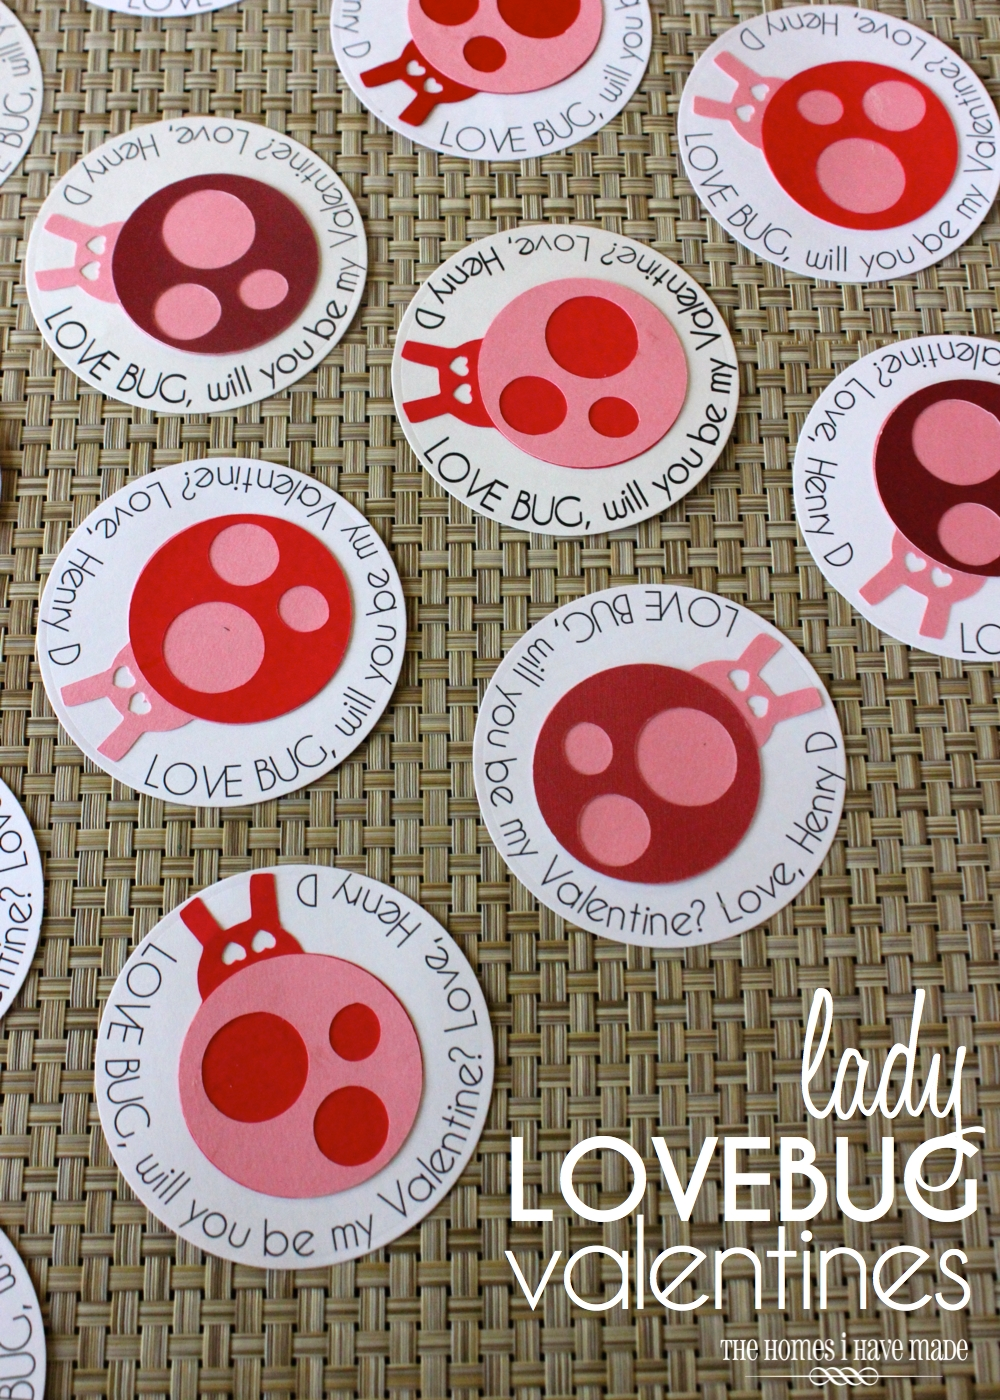 Lady Lovebugs-011